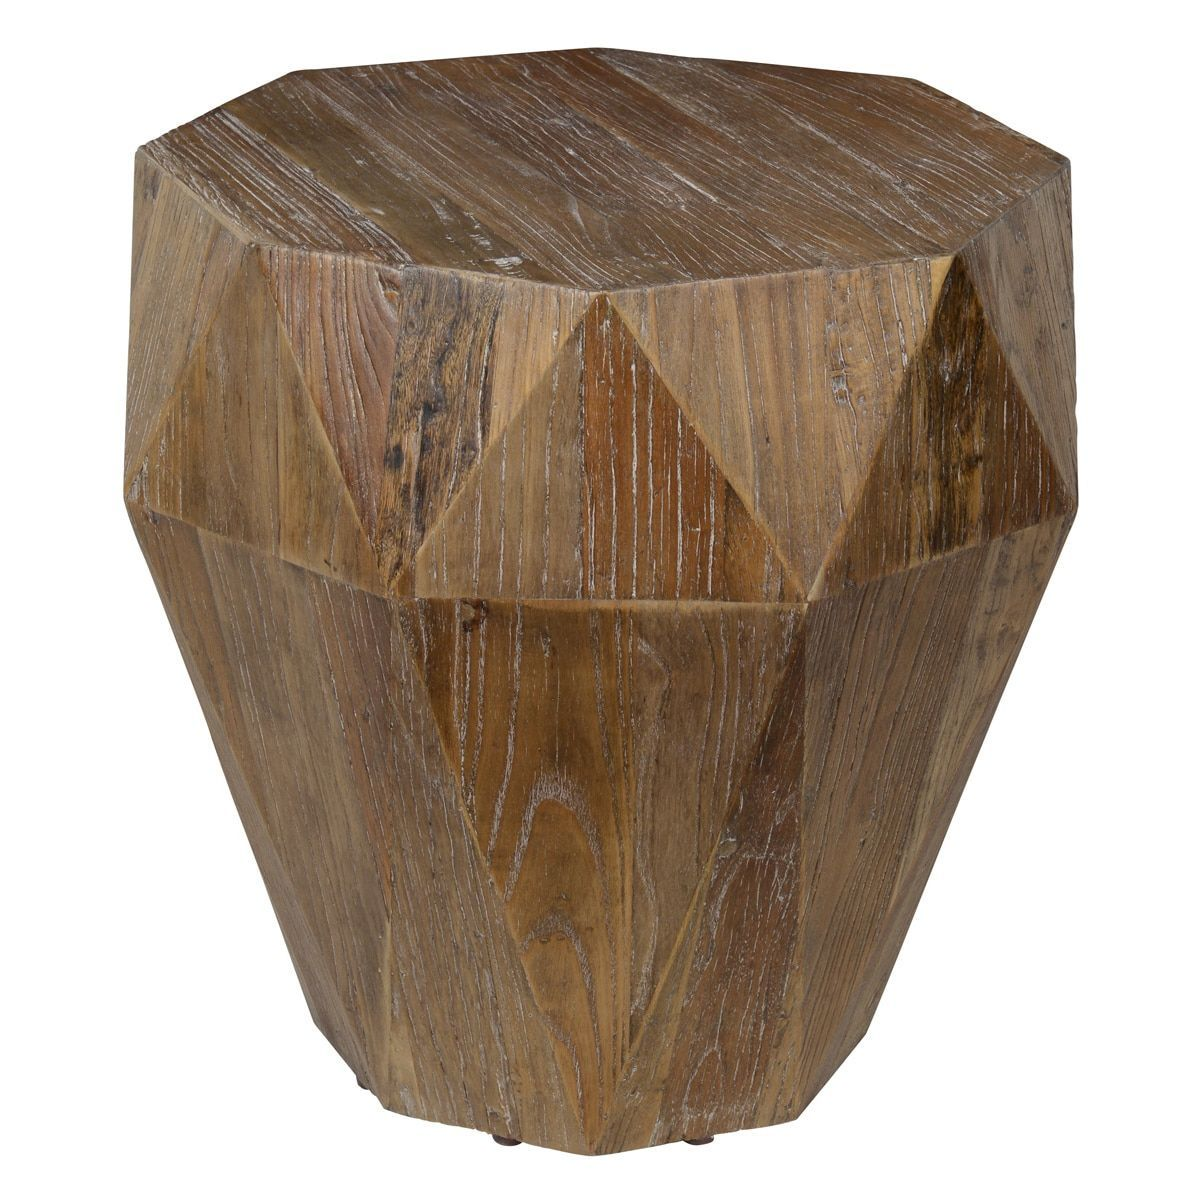 Kosas Home Transitional Casablanca Side Table (Natural Geometric Side Table), Brown